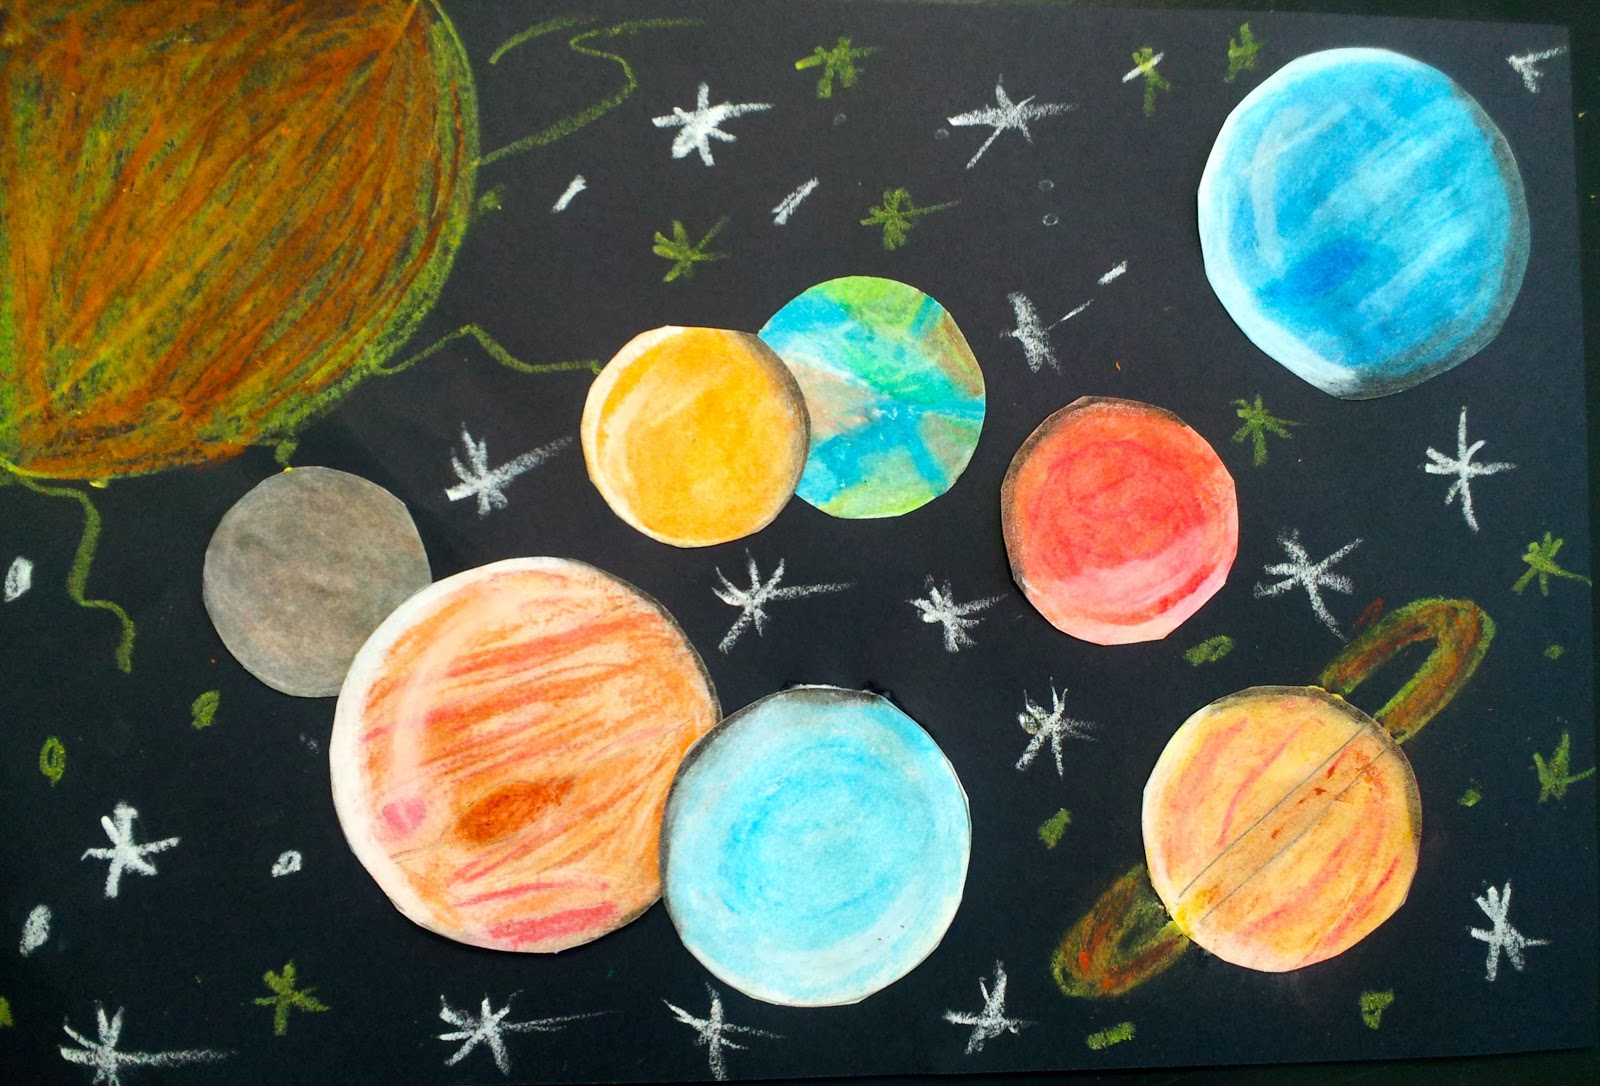 solar system wall painting pinterest - photo #17